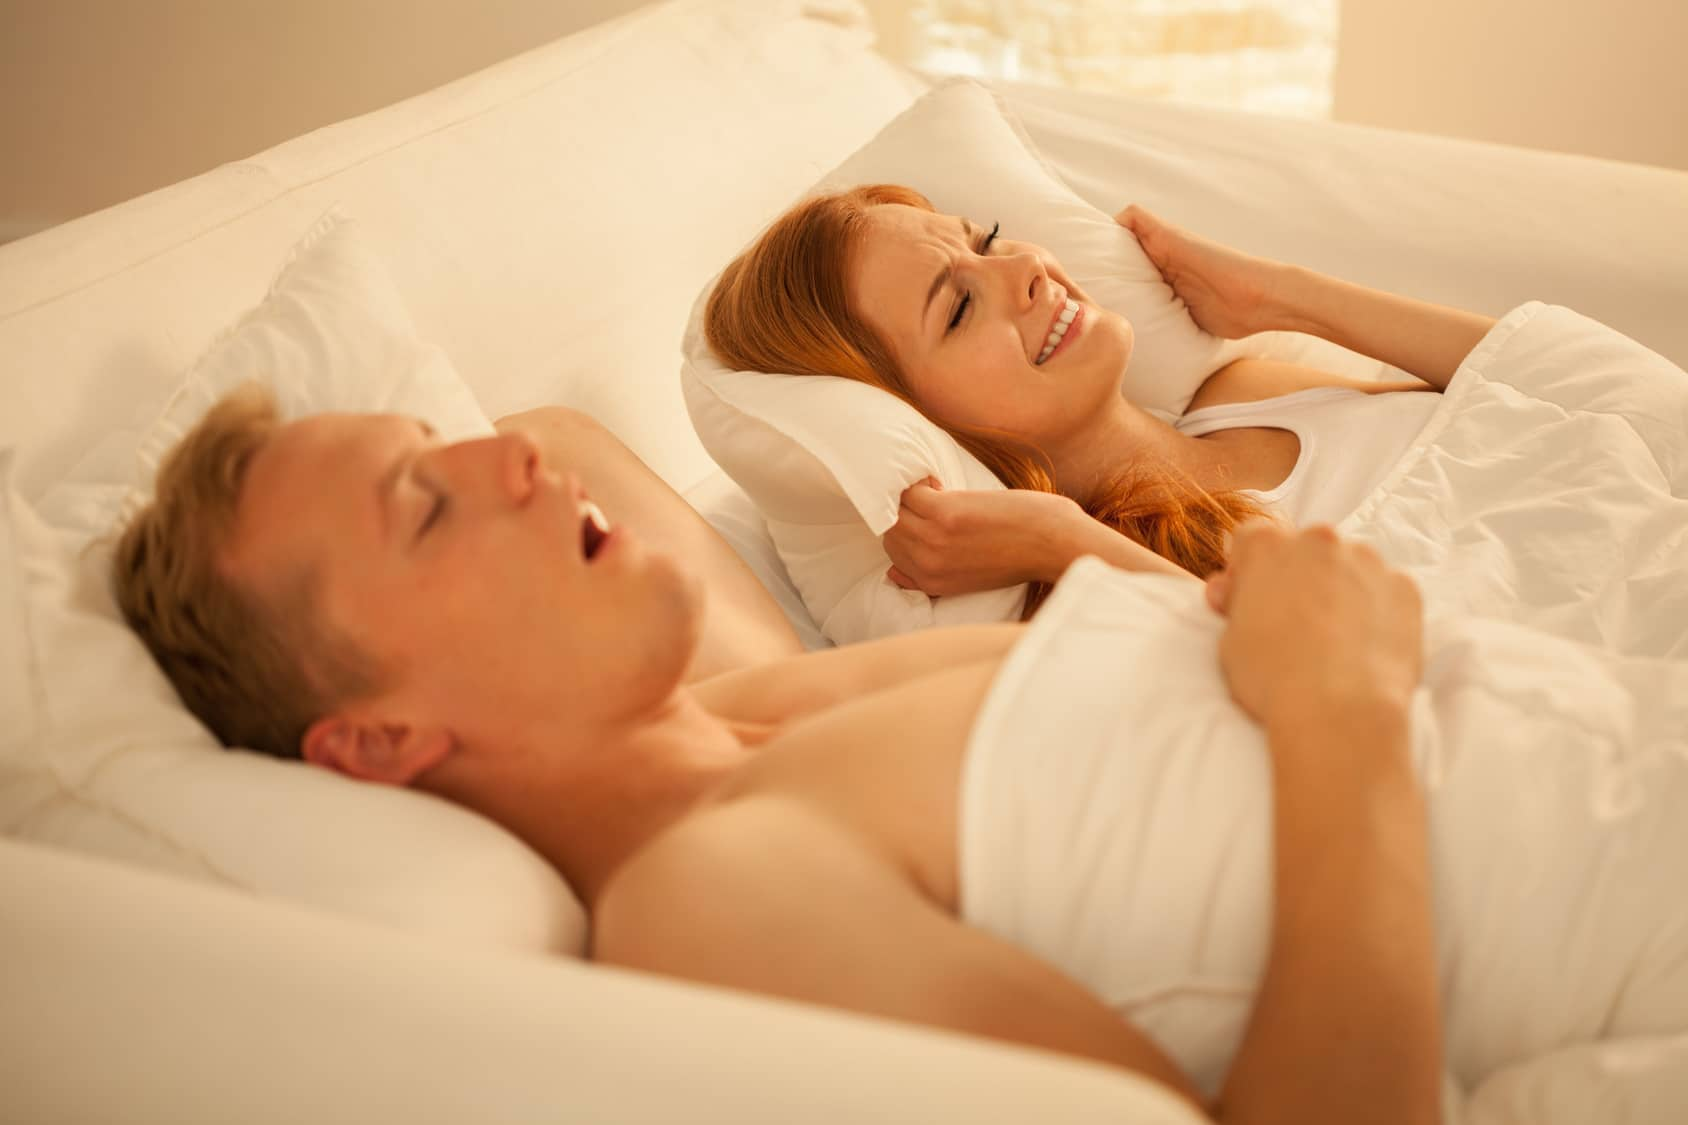 Snoring is a serious but treatable condition